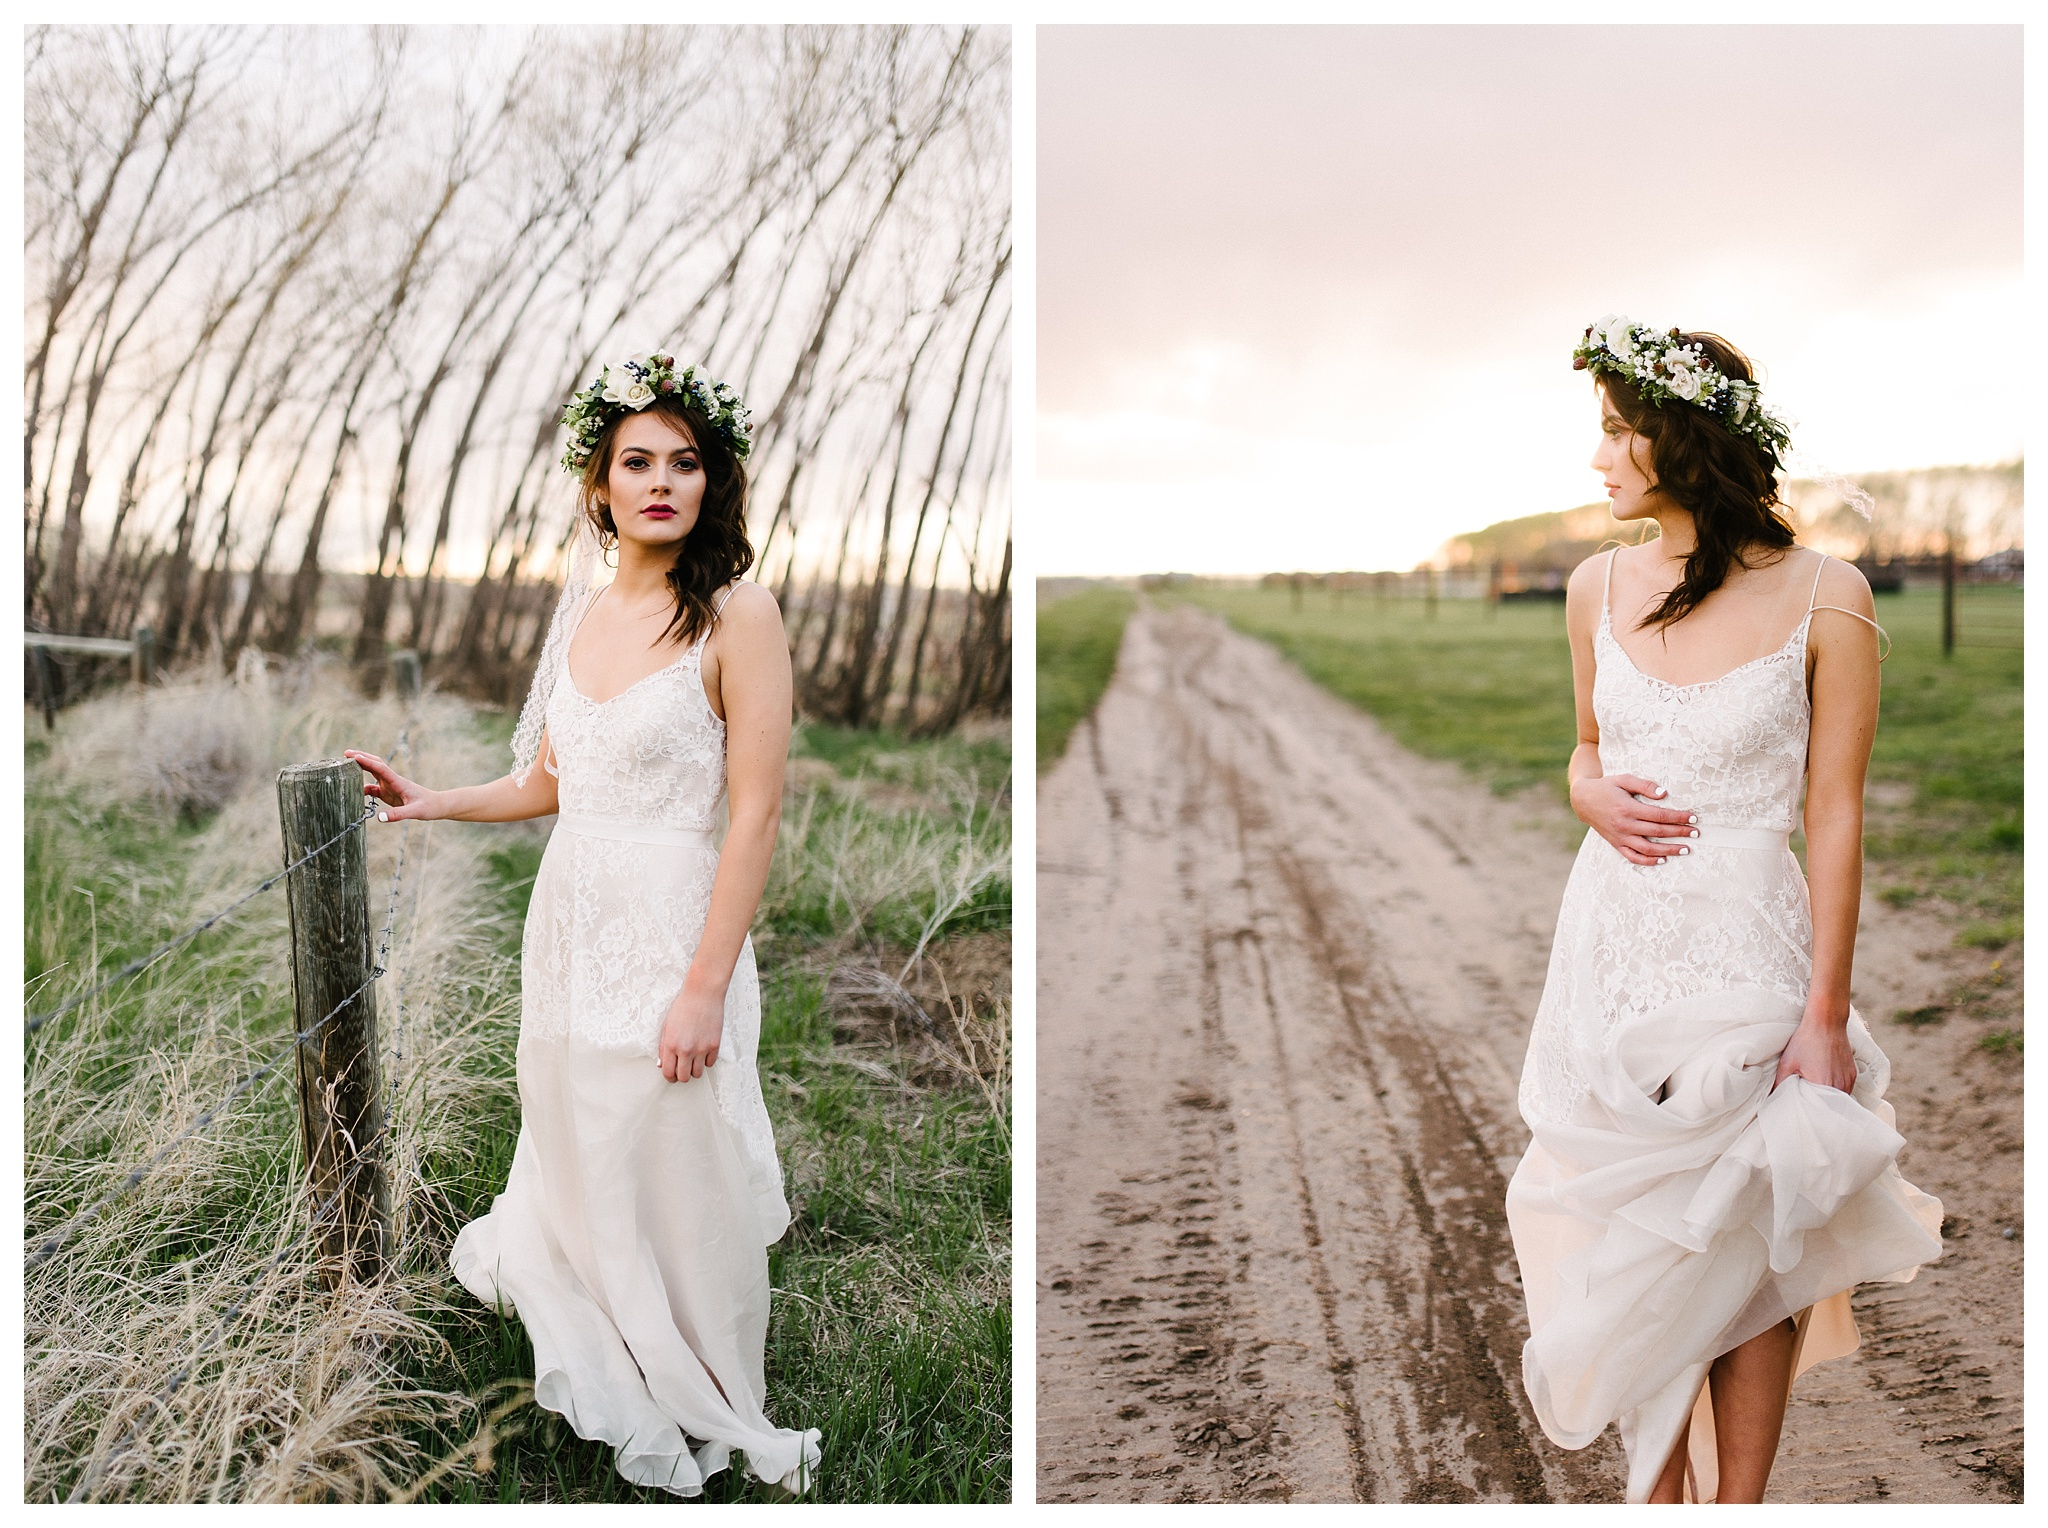 Gown- Amelie by Anais Annette.